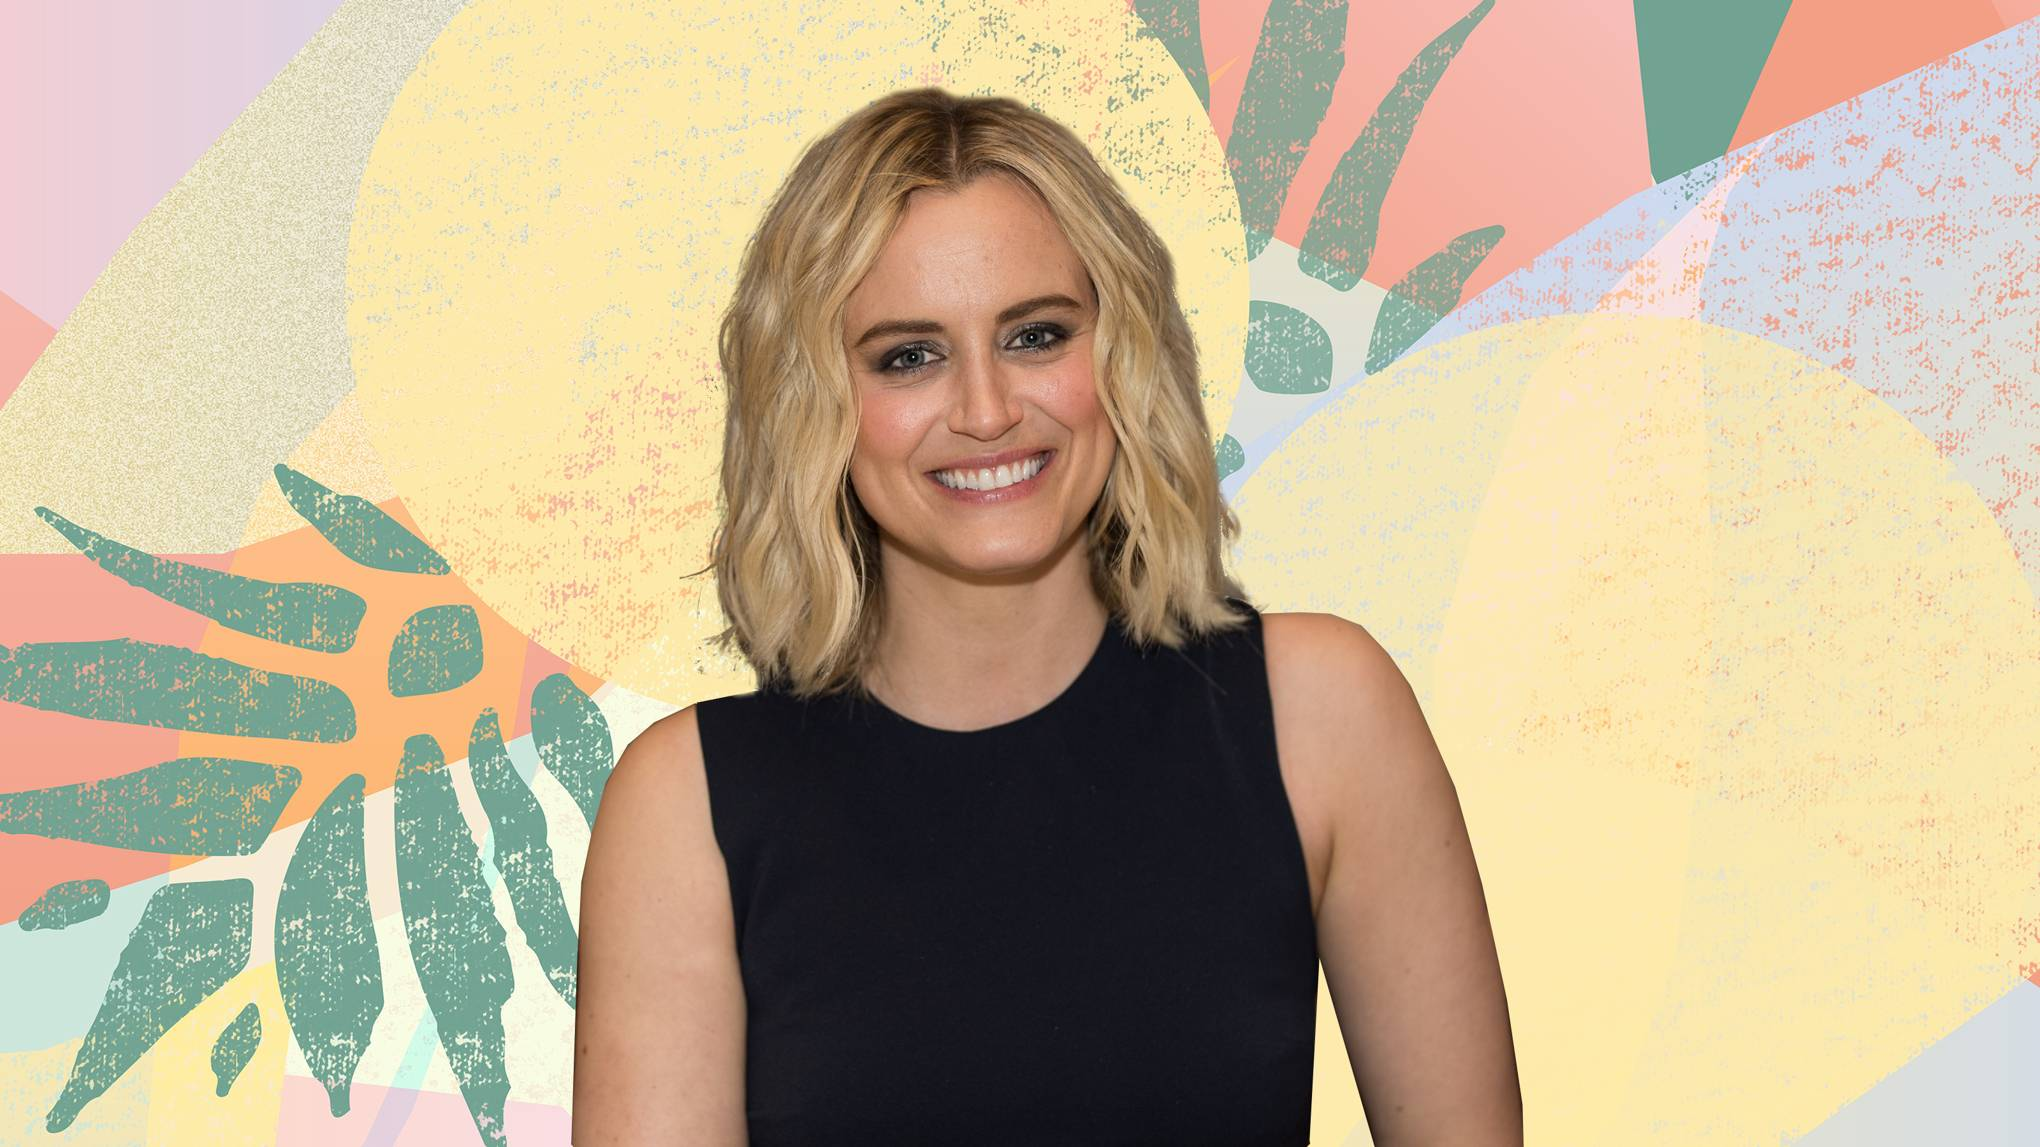 ICloud Taylor Schilling nude (93 foto and video), Tits, Leaked, Selfie, cameltoe 2019